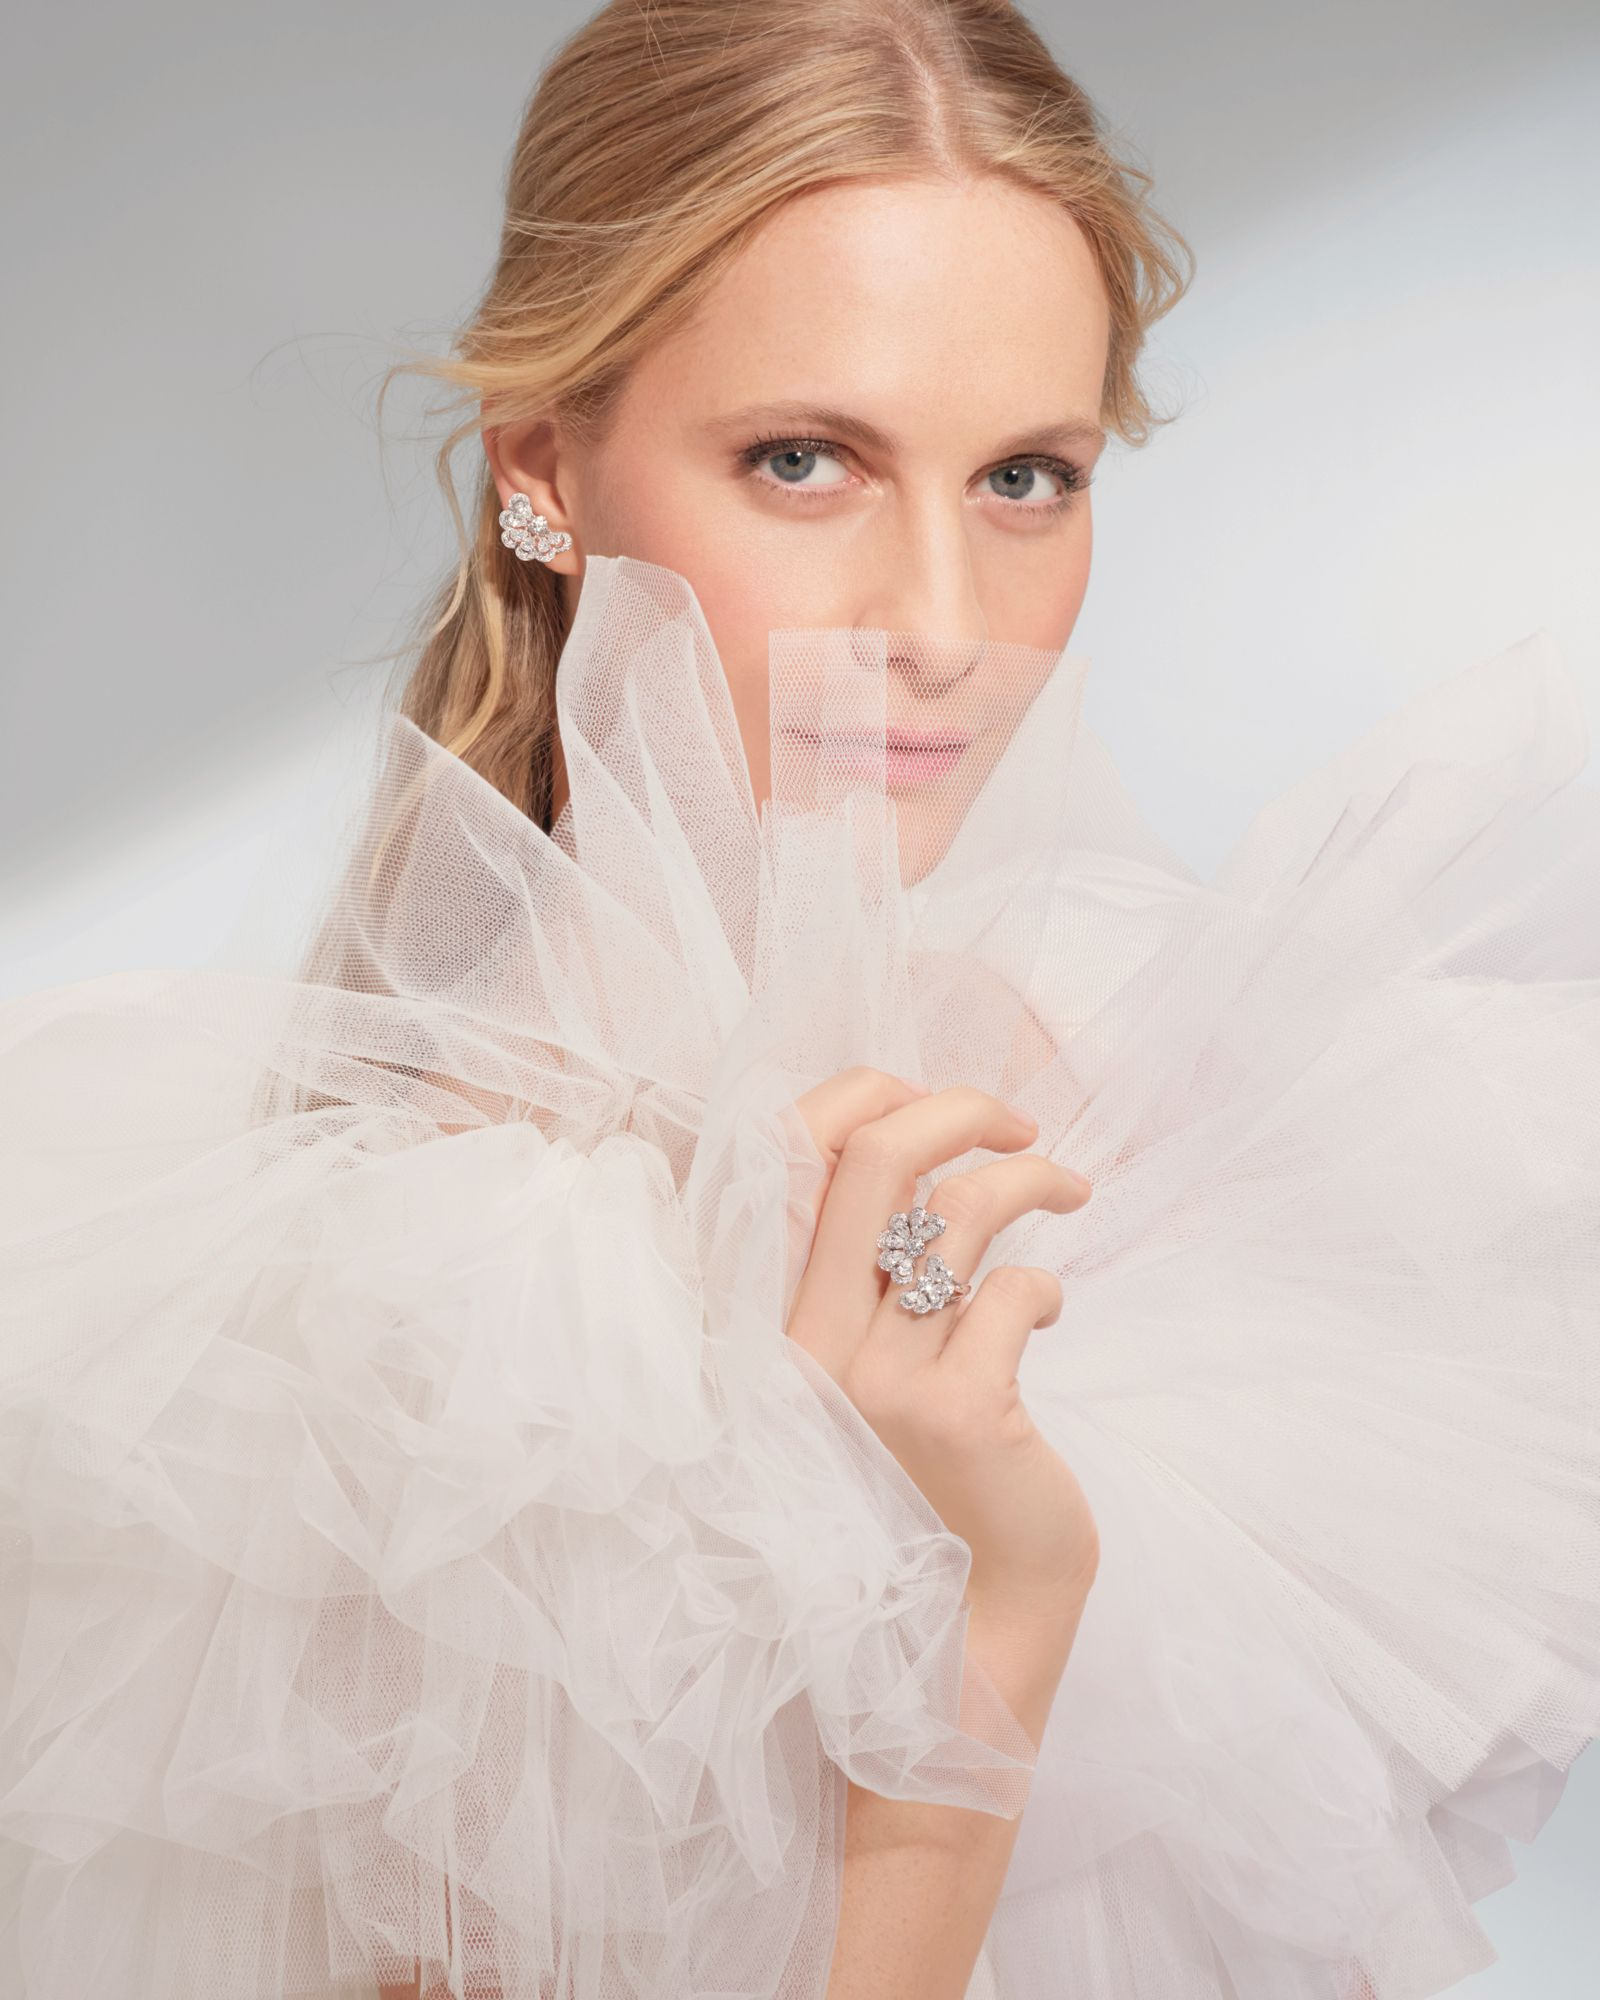 How Model-Actress Poppy Delevingne Has Been Spending Her Time During Lockdown